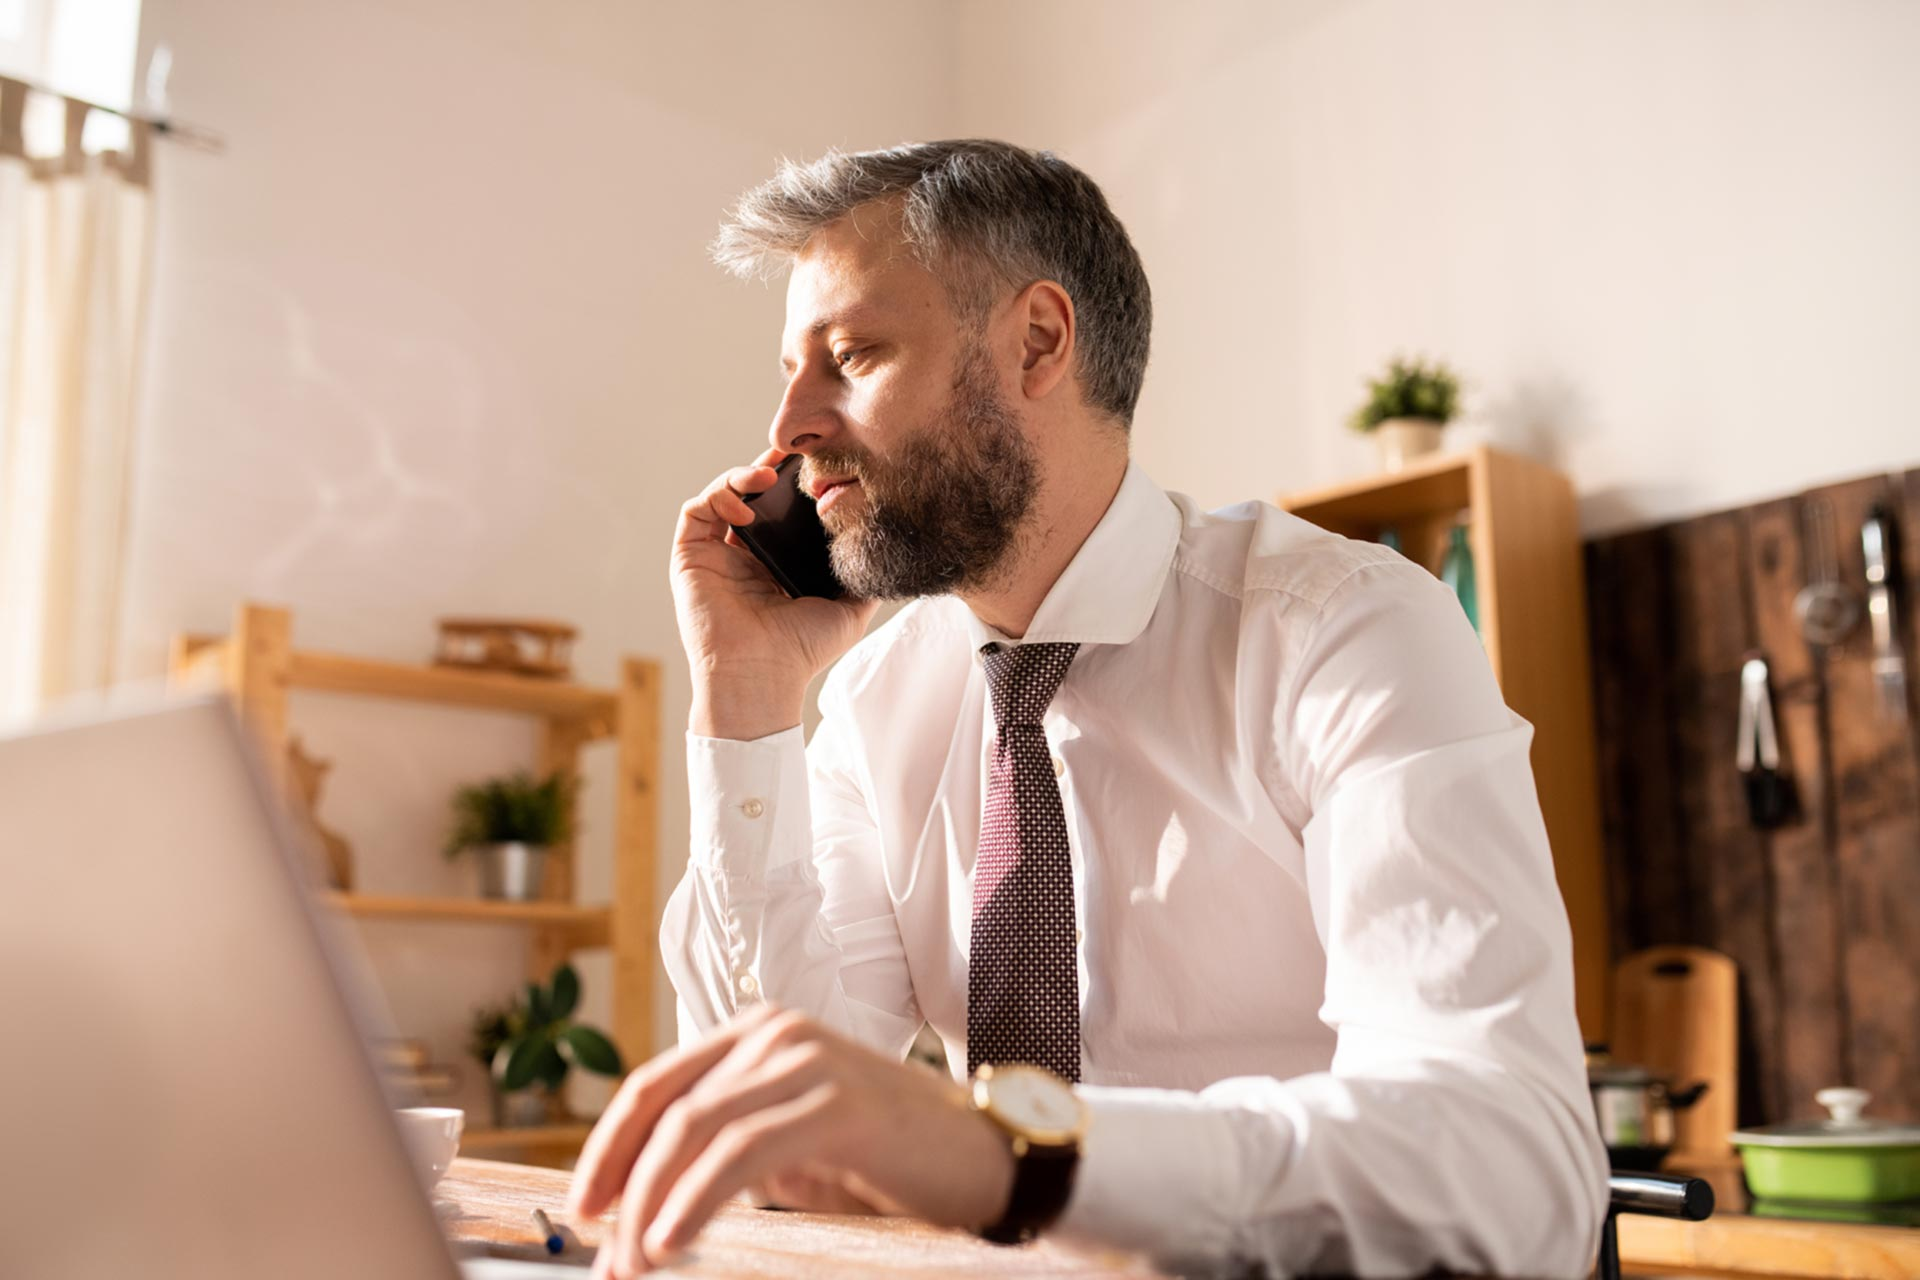 Man updating his business information and documents